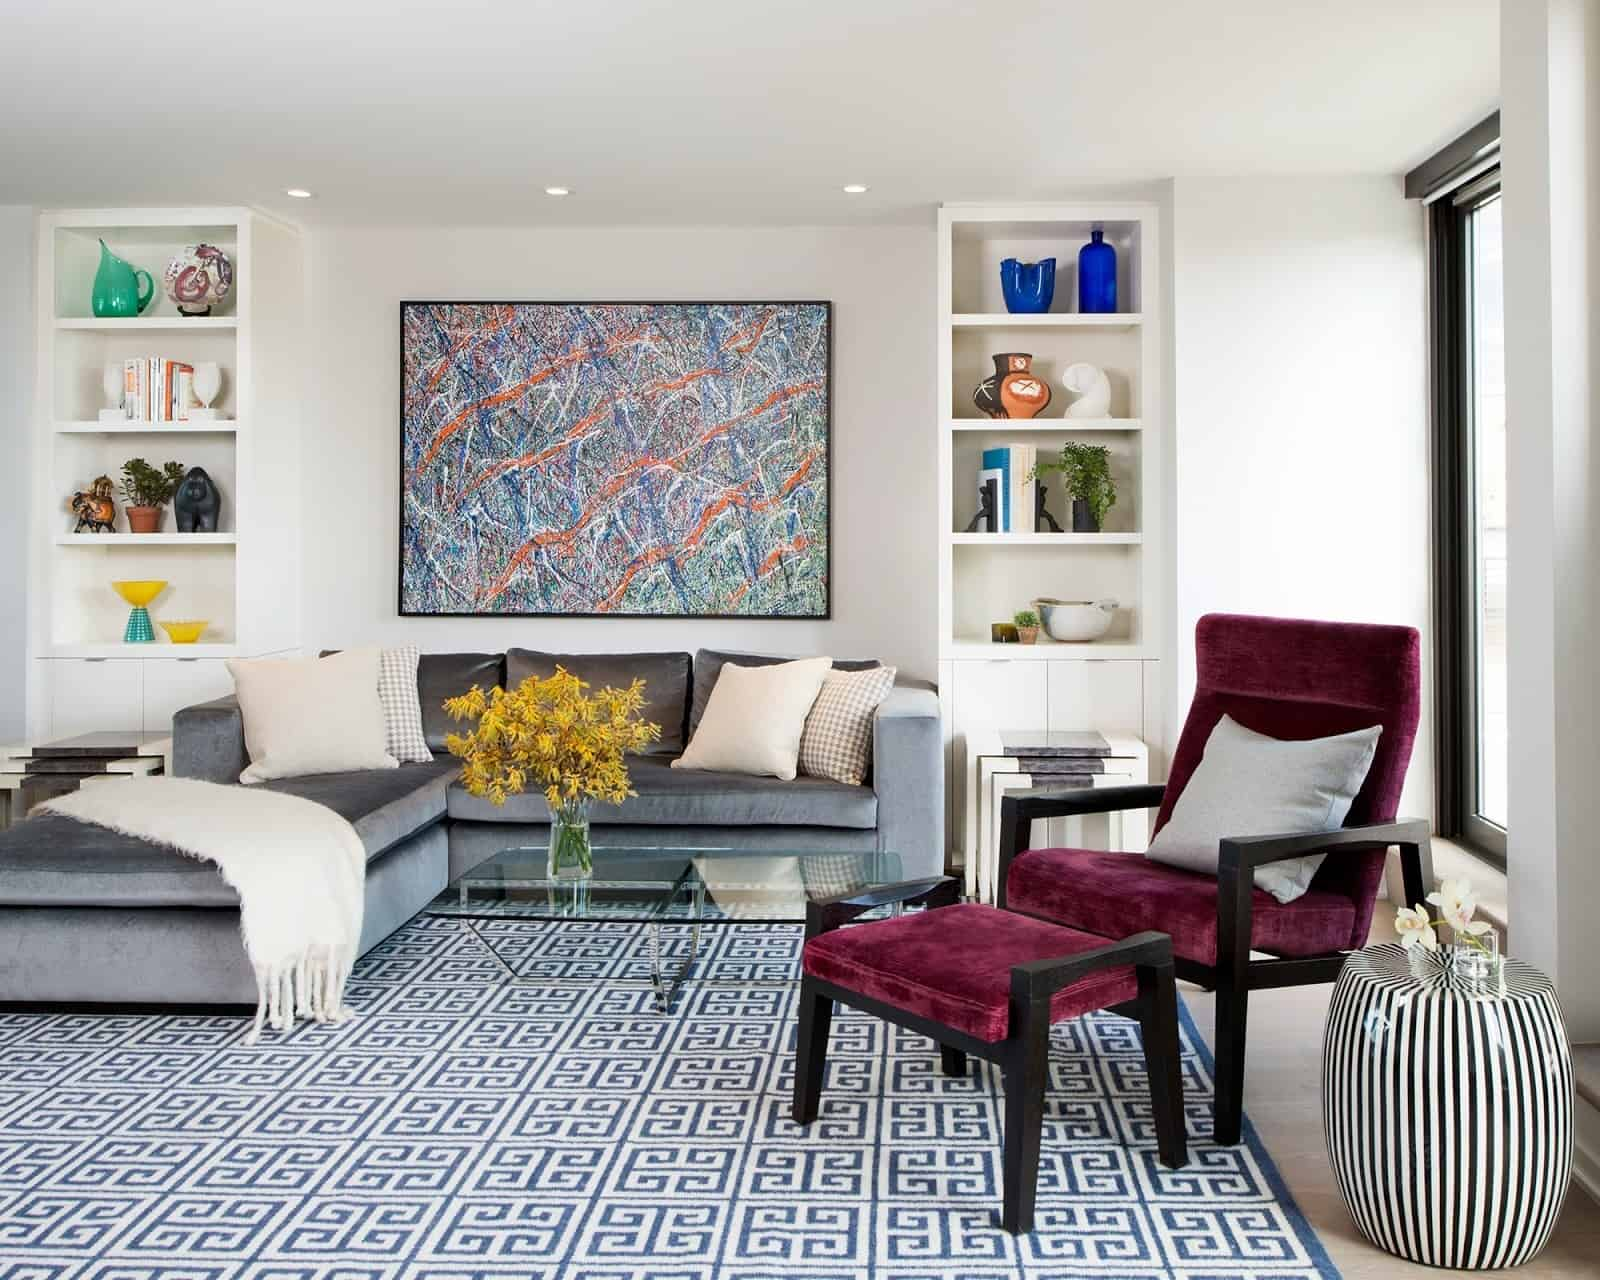 Excellent Tips How To Mix Patterns In Your Home Like A Pro